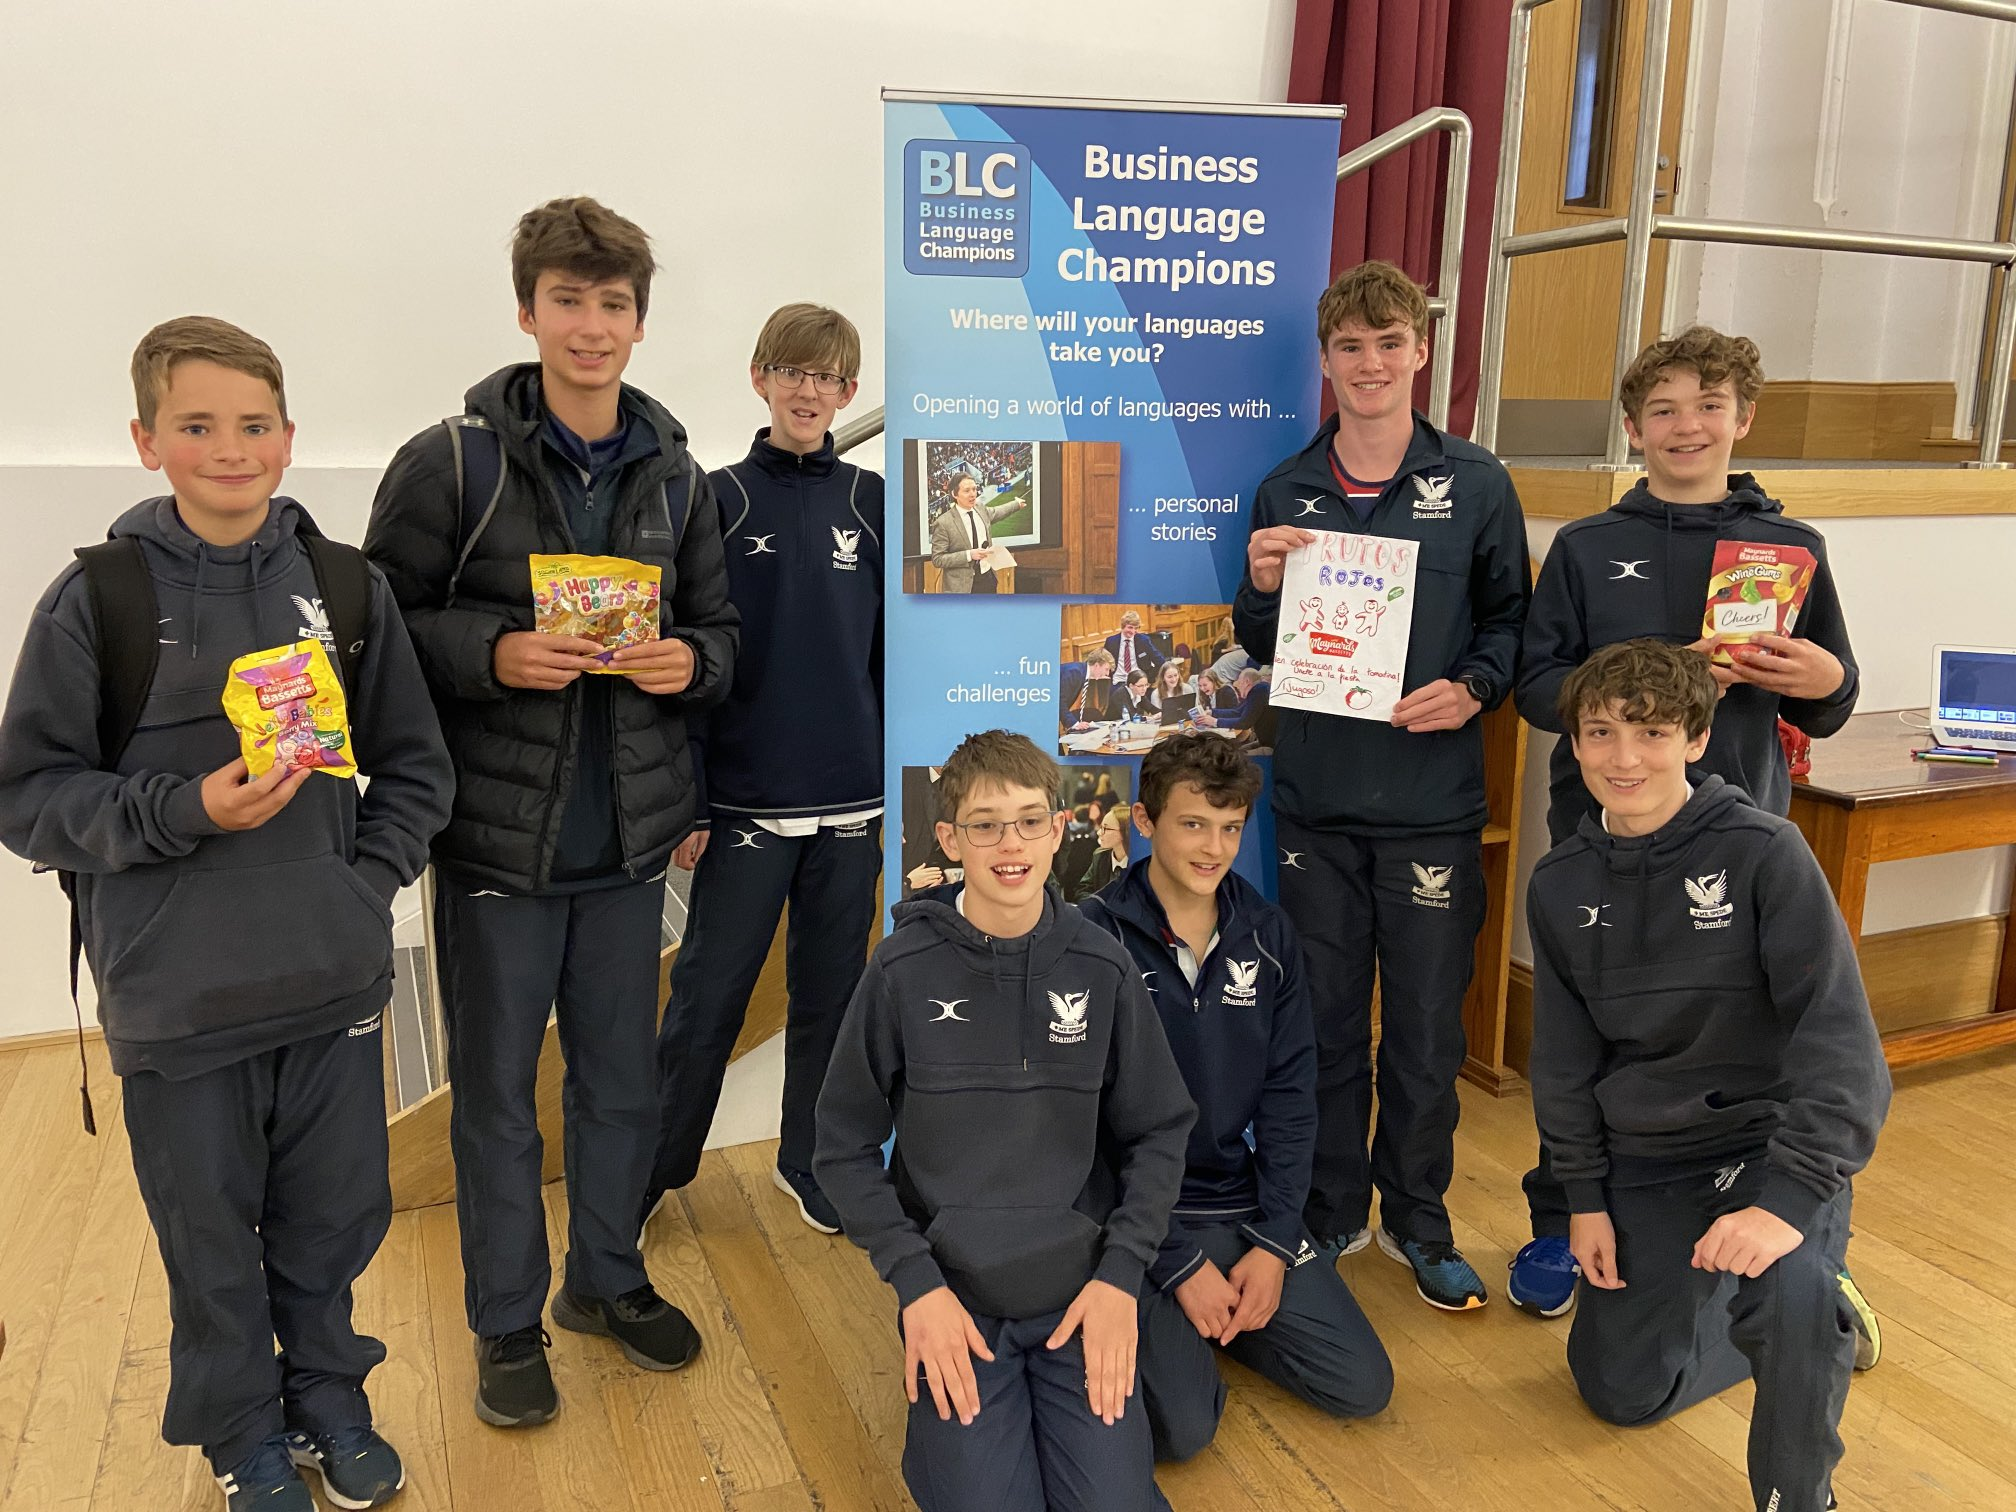 Winners - Y9 marketing challenge team frutos rojos - tomatina themed jelly babies